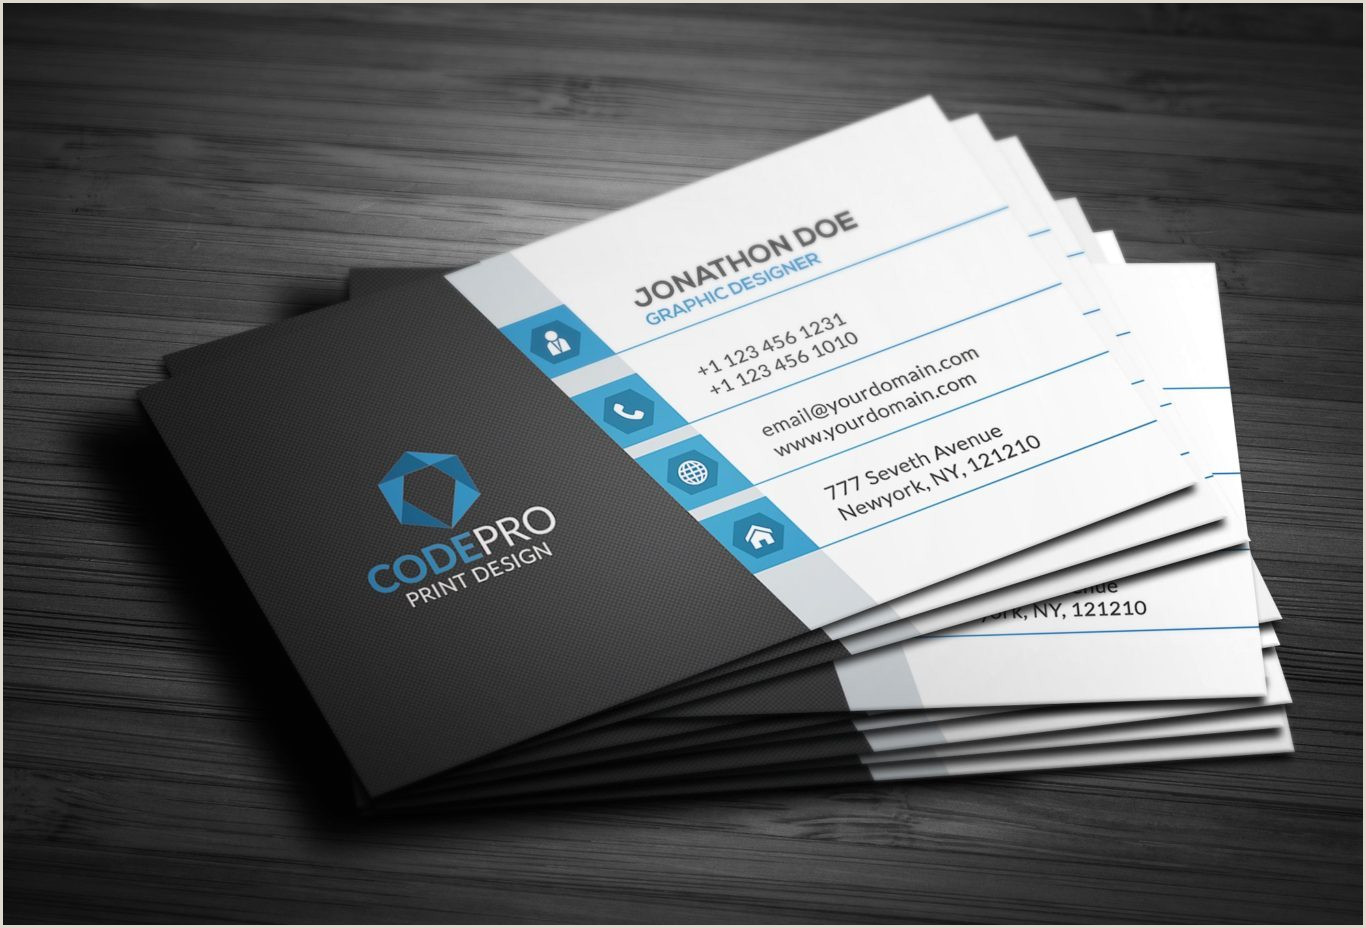 Information To Put On Business Card What Information To Put On A Business Card Blog